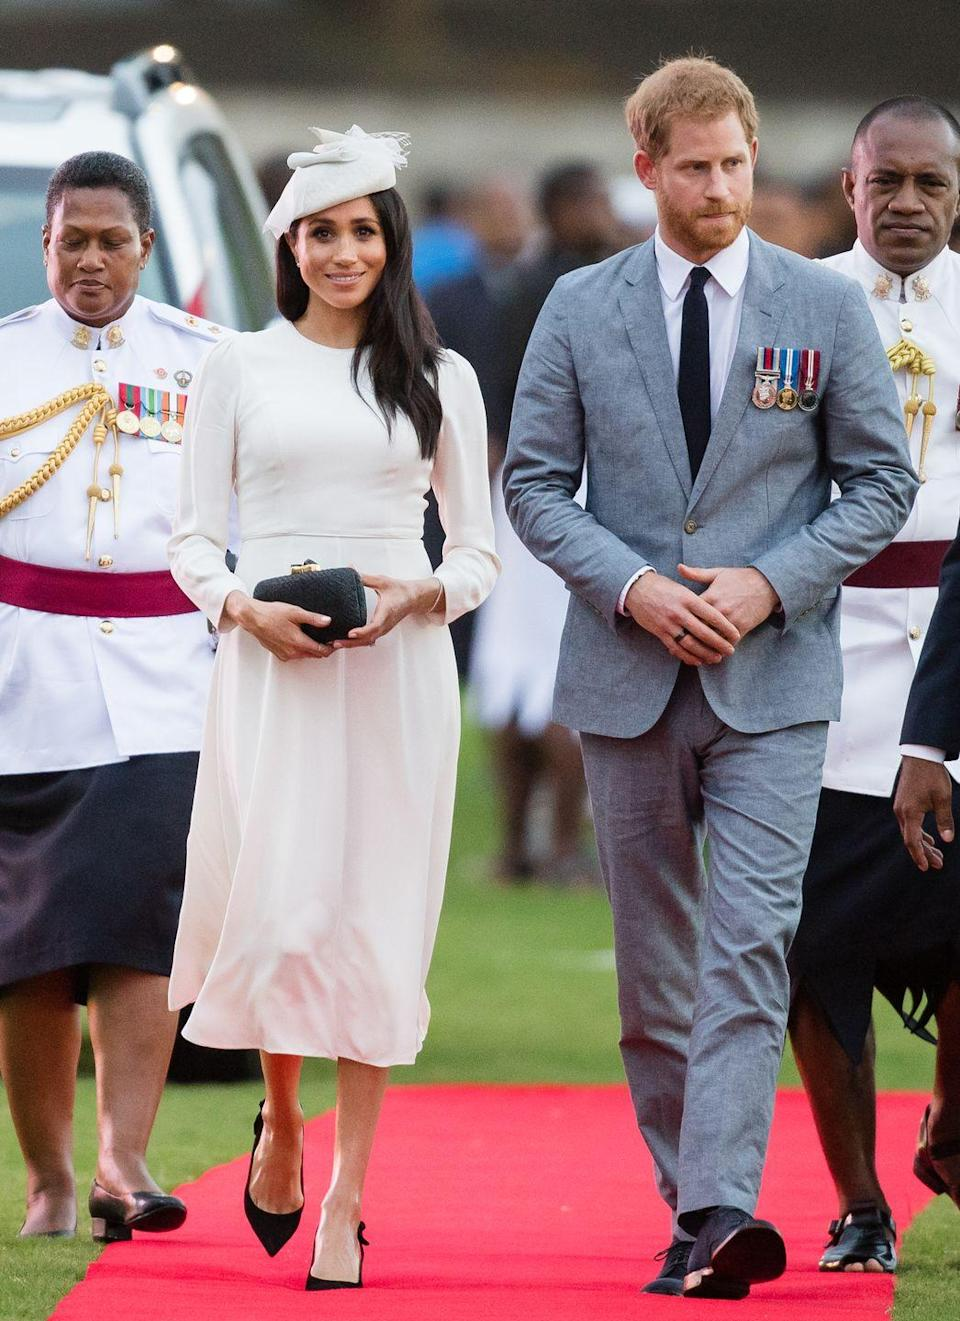 "<p>Harry and <a href=""https://www.townandcountrymag.com/style/fashion-trends/a24066587/meghan-markle-zimmerman-royal-tour-fiji-photos/"" rel=""nofollow noopener"" target=""_blank"" data-ylk=""slk:Meghan have landed in Fiji!"" class=""link rapid-noclick-resp"">Meghan have landed in Fiji!</a> For their arrival, the Duchess wore a white dress by <a href=""https://www.instagram.com/zimmermann/?hl=en"" rel=""nofollow noopener"" target=""_blank"" data-ylk=""slk:Zimmermann"" class=""link rapid-noclick-resp"">Zimmermann</a> with a matching Stephen Jones fascinator. She also wore a straw clutch by Kayu with a pair of heels by Tabitha Simmons.</p><p><a class=""link rapid-noclick-resp"" href=""https://go.redirectingat.com?id=74968X1596630&url=https%3A%2F%2Fwww.bloomingdales.com%2Fshop%2Fproduct%2Ftabitha-simmons-womens-millie-slingback-pointed-toe-pumps%3FID%3D2956738&sref=https%3A%2F%2Fwww.townandcountrymag.com%2Fstyle%2Ffashion-trends%2Fg3272%2Fmeghan-markle-preppy-style%2F"" rel=""nofollow noopener"" target=""_blank"" data-ylk=""slk:SHOP NOW"">SHOP NOW</a> <em>Millie Slingback Pumps by Tabitha Simmons, $695</em></p><p><a class=""link rapid-noclick-resp"" href=""https://go.redirectingat.com?id=74968X1596630&url=https%3A%2F%2Fwww.shopbop.com%2Fanna-straw-clutch-kayu%2Fvp%2Fv%3D1%2F1560096446.htm&sref=https%3A%2F%2Fwww.townandcountrymag.com%2Fstyle%2Ffashion-trends%2Fg3272%2Fmeghan-markle-preppy-style%2F"" rel=""nofollow noopener"" target=""_blank"" data-ylk=""slk:SHOP NOW"">SHOP NOW </a><em>Kayu Anna Straw Clutch, $157.50</em></p>"